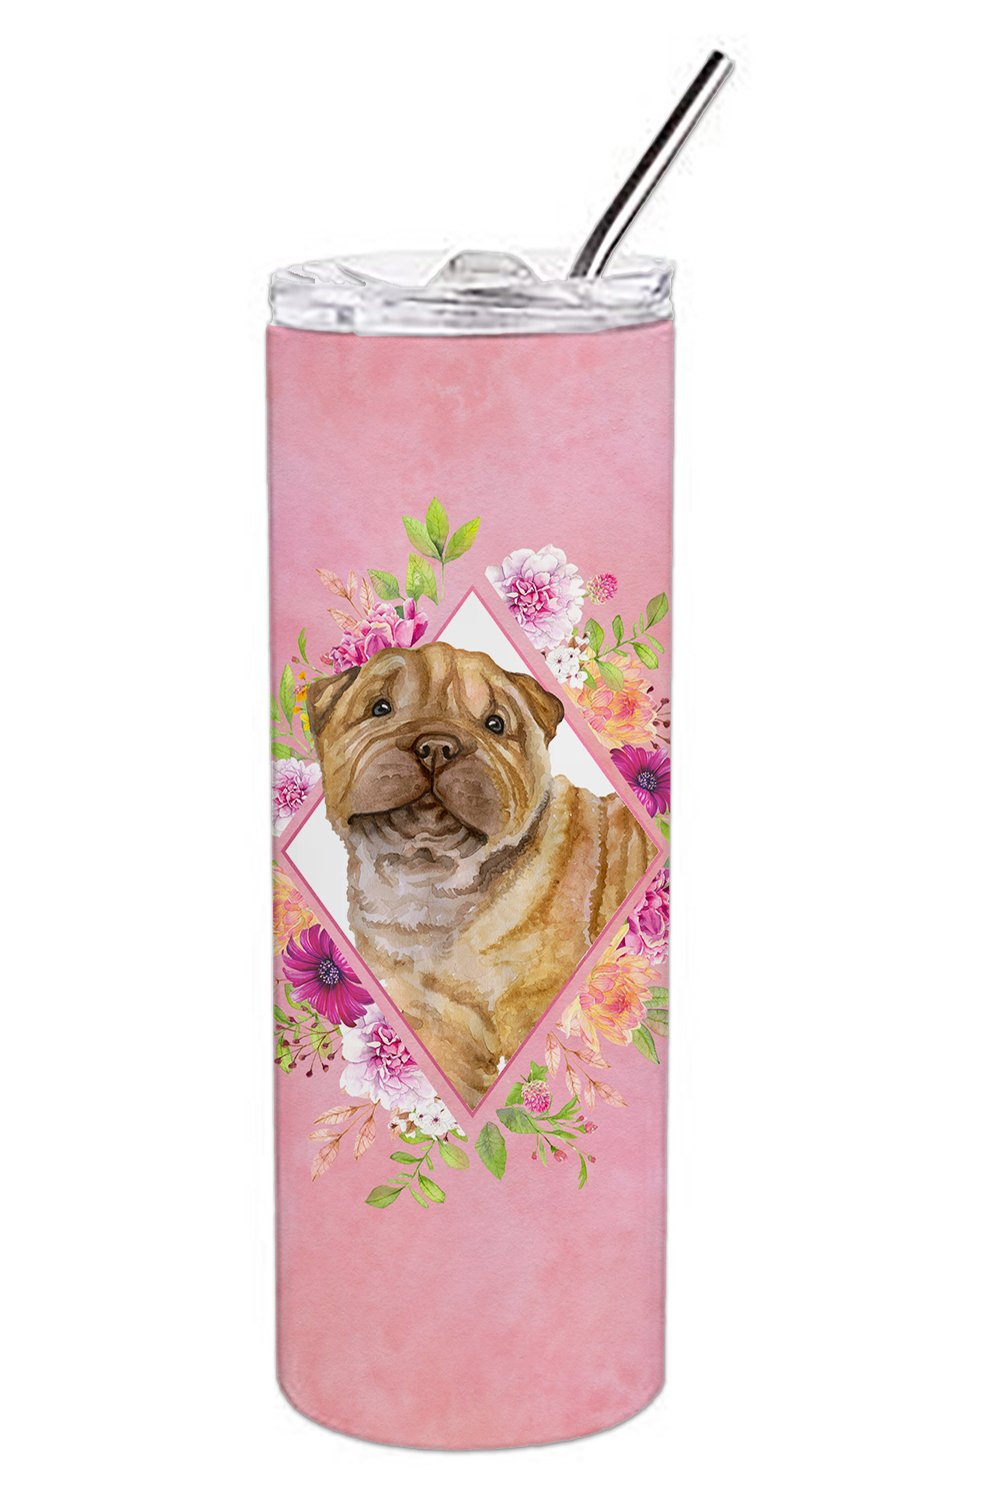 Shar Pei Pink Flowers Double Walled Stainless Steel 20 oz Skinny Tumbler CK4181TBL20 by Caroline's Treasures